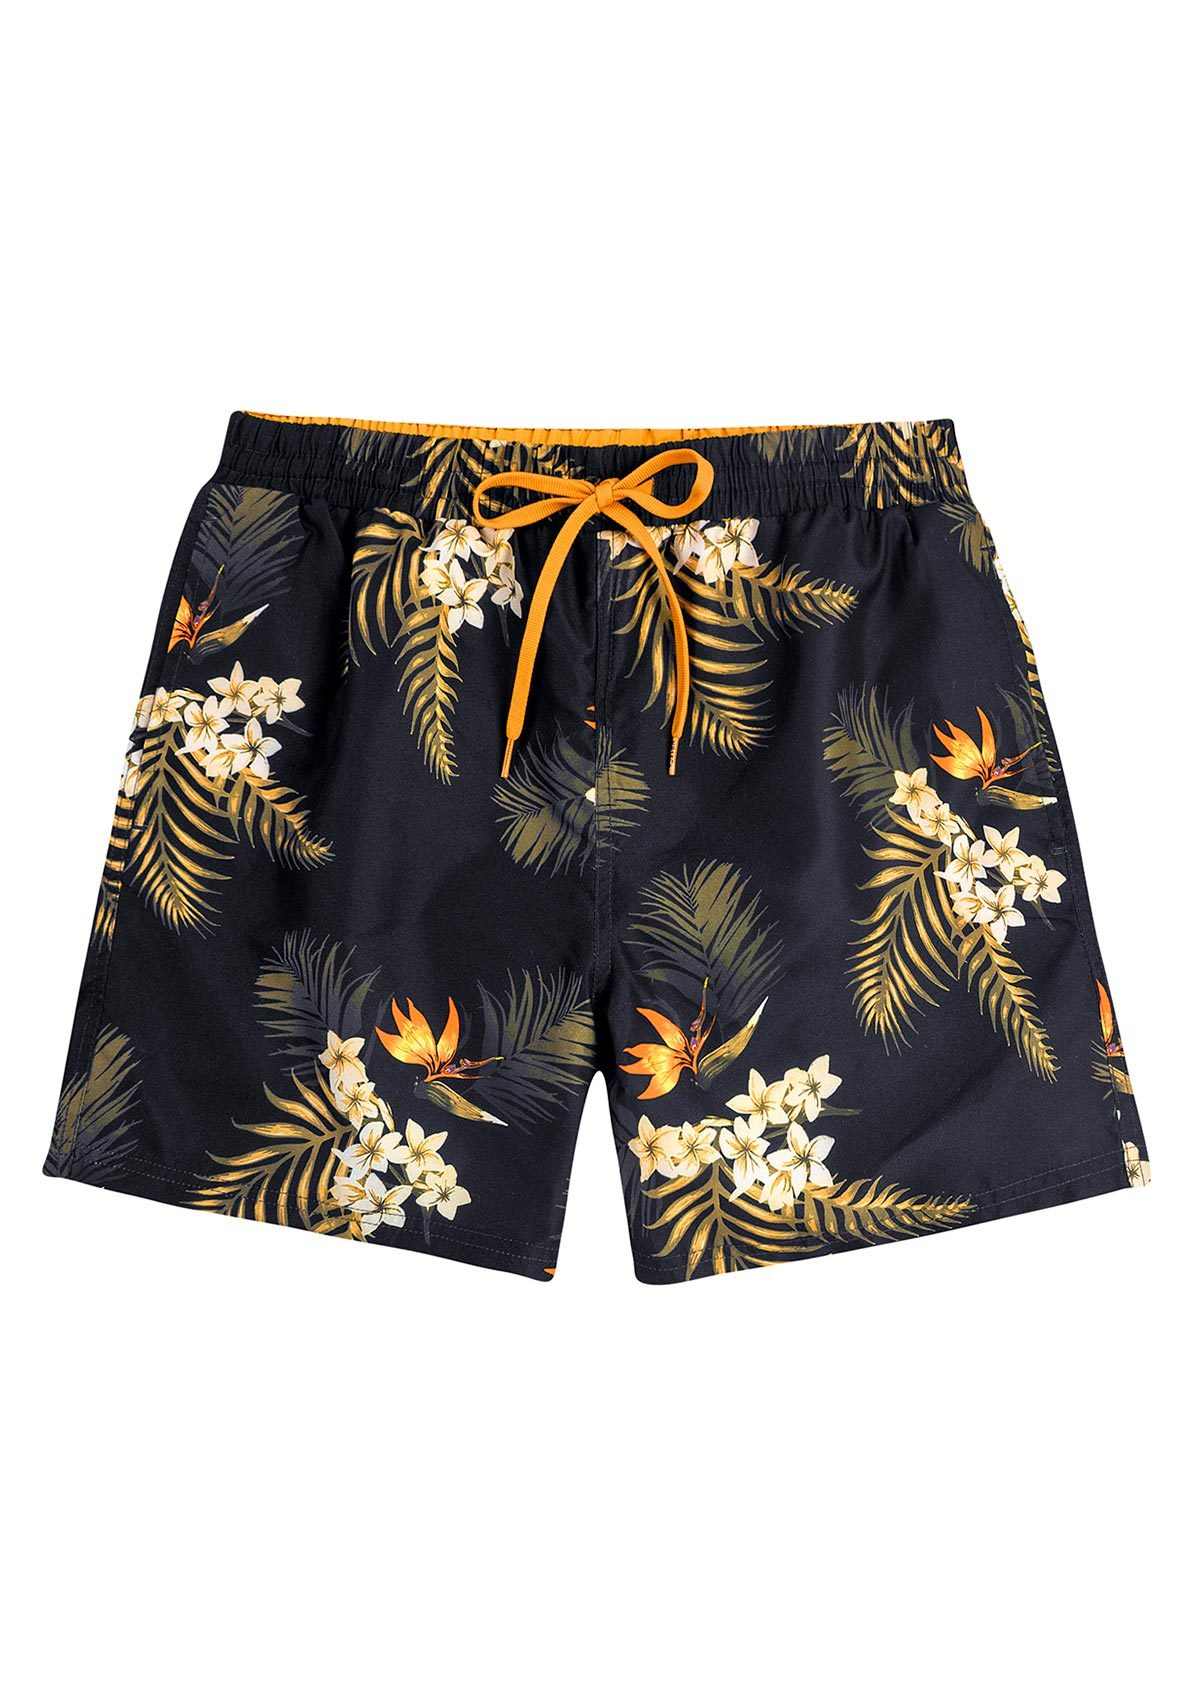 Shorts Masculino Estampado Hering Kids